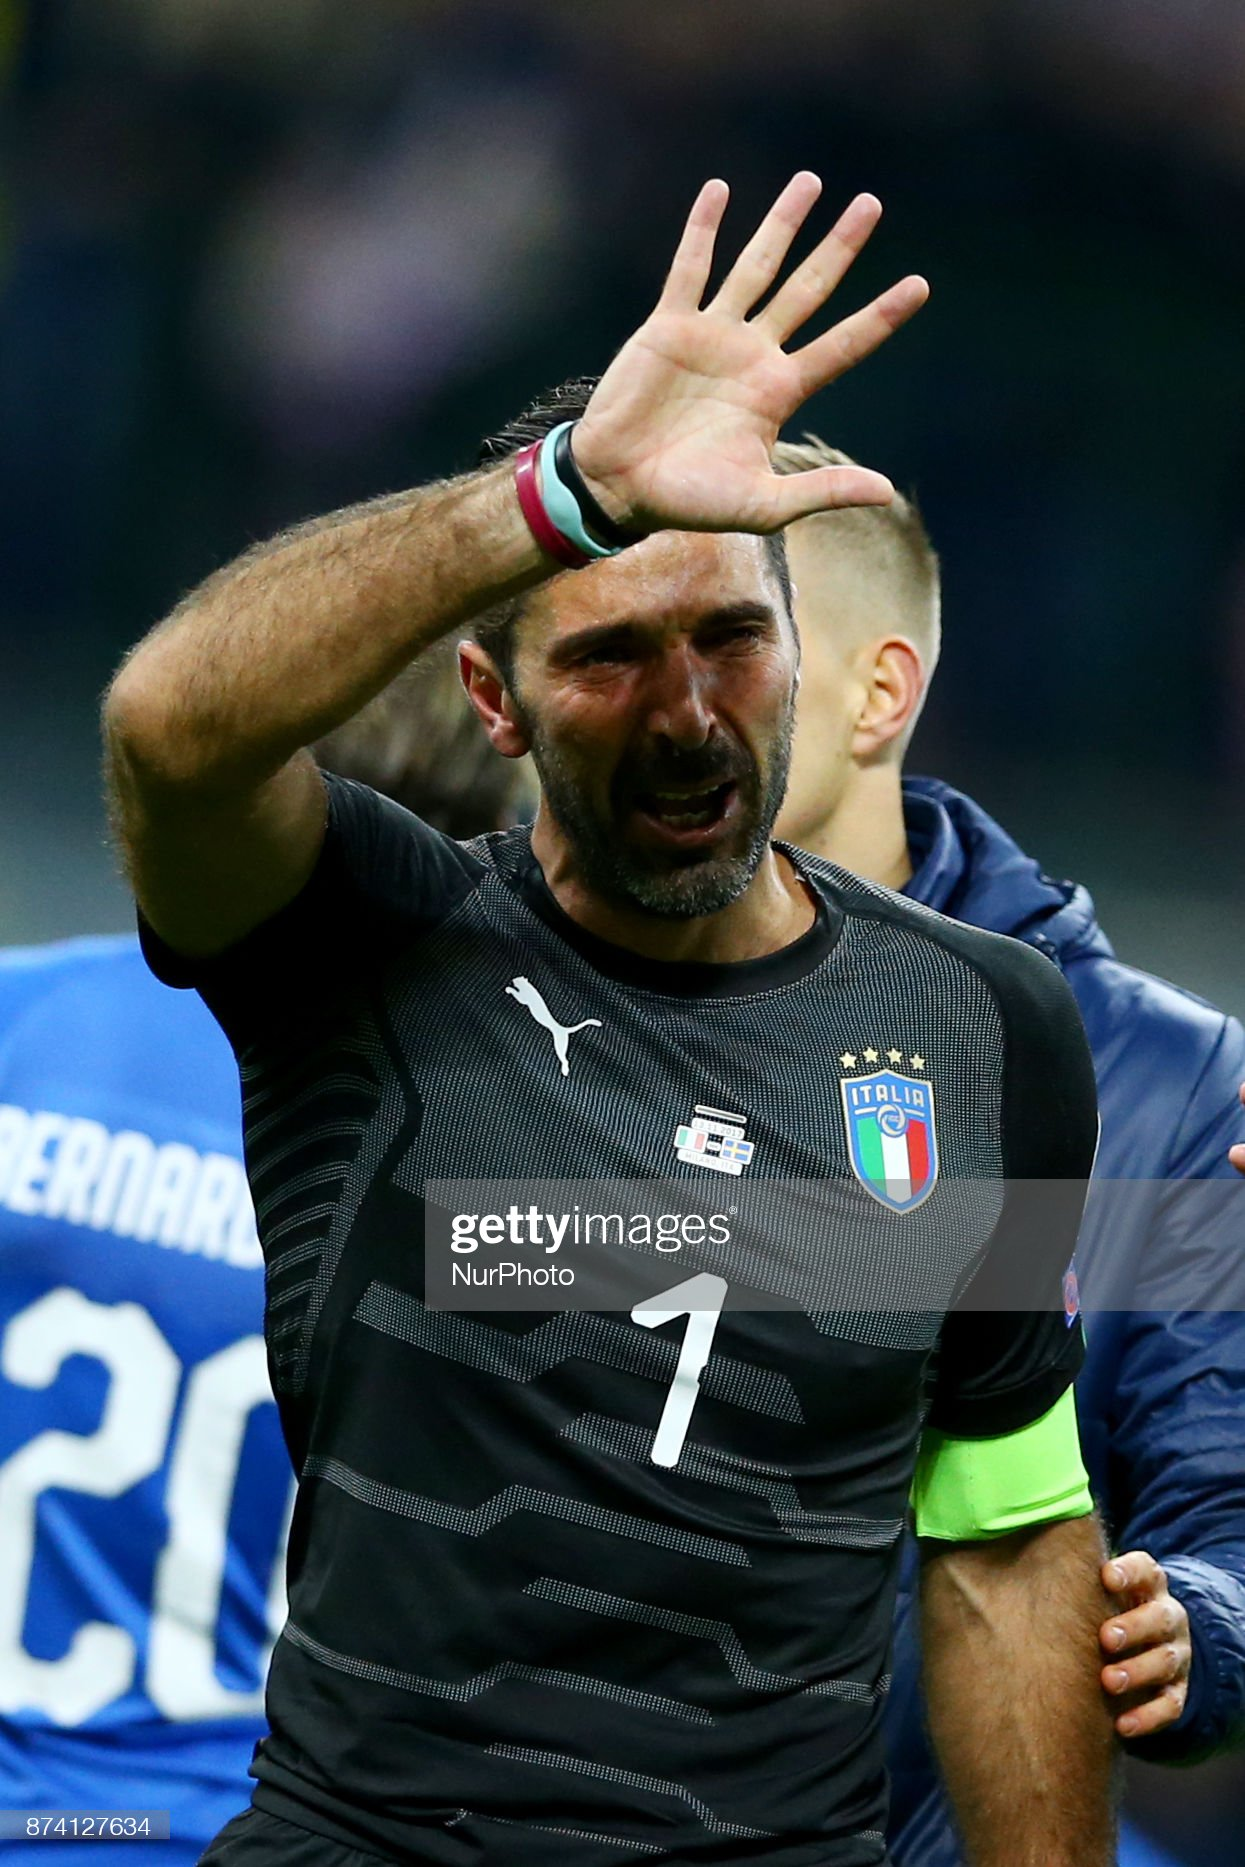 Italy v sweden - 2018 fifa world cup qualifying play-off: second leg: news photo, italian national team